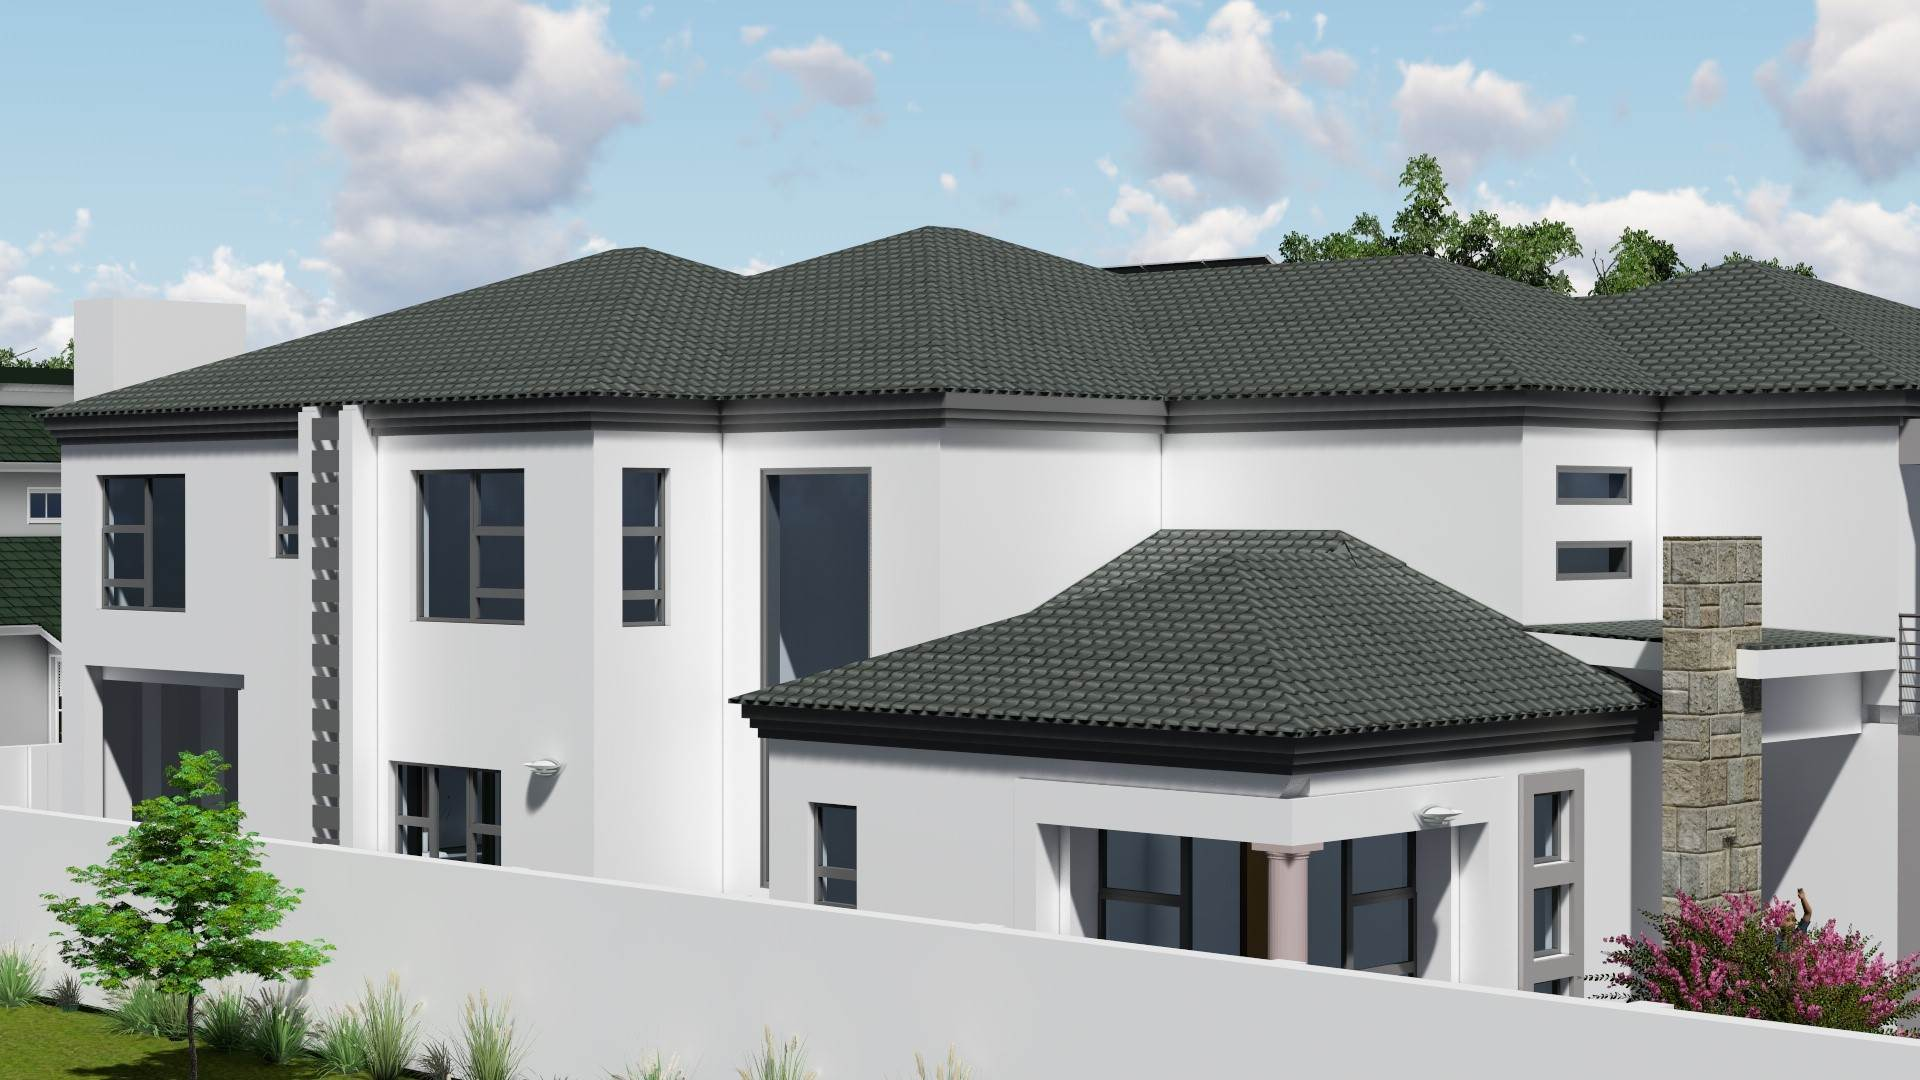 Nelspruit house for sale in drum rock nelspruit was listed for